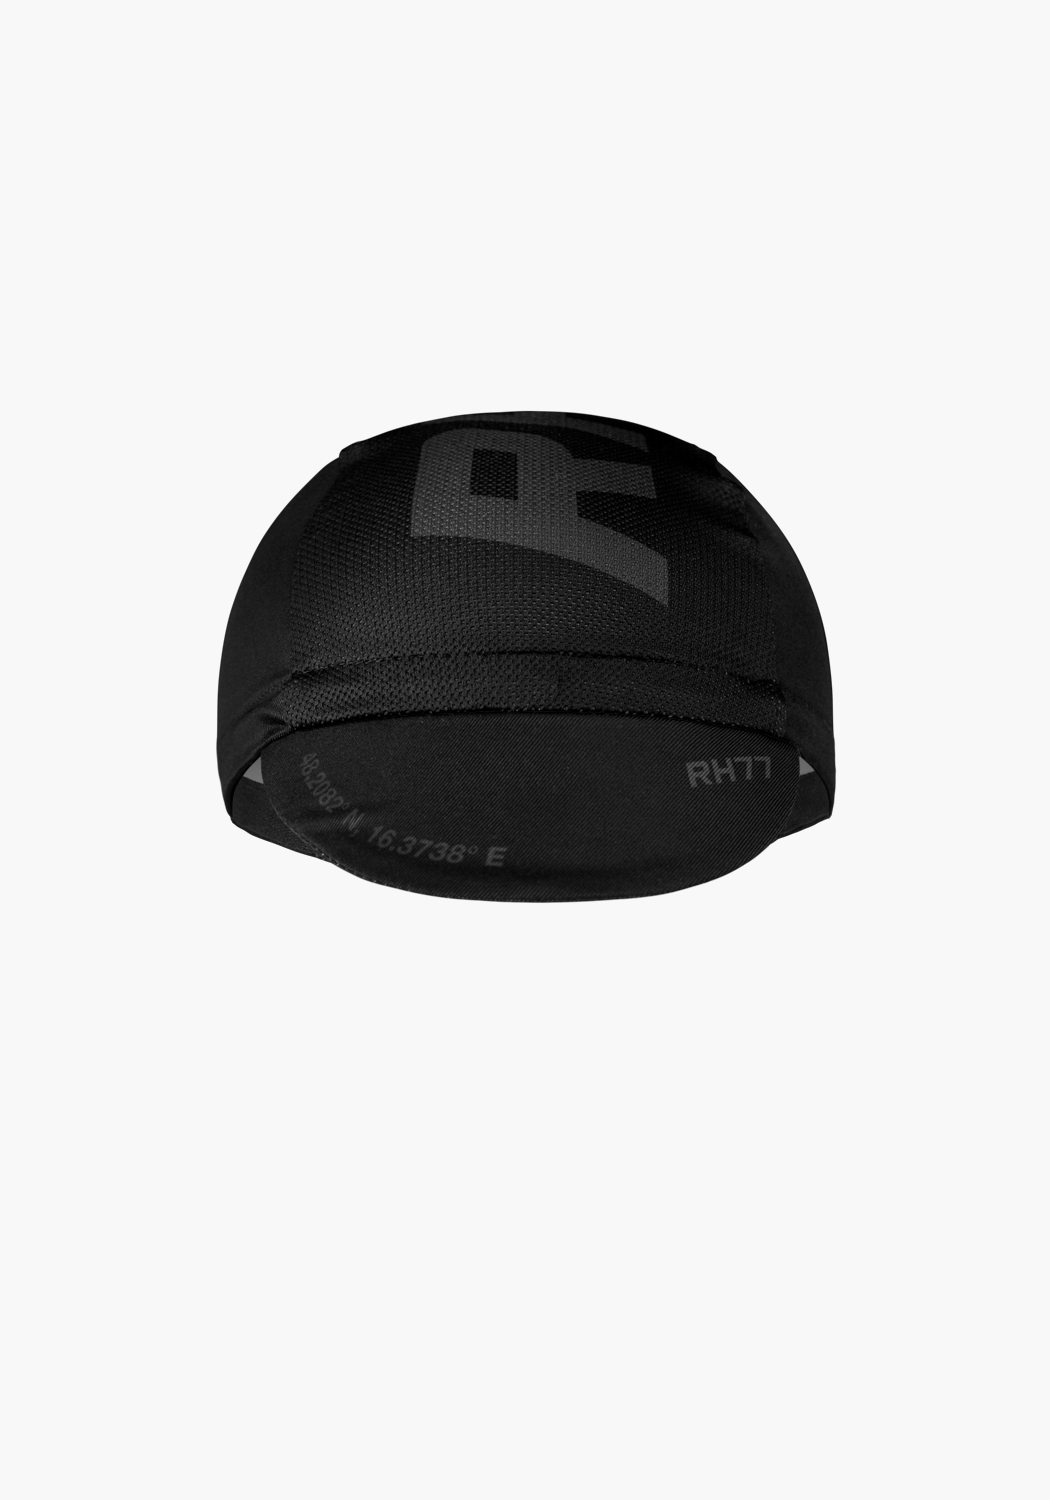 BLCK Base Cap